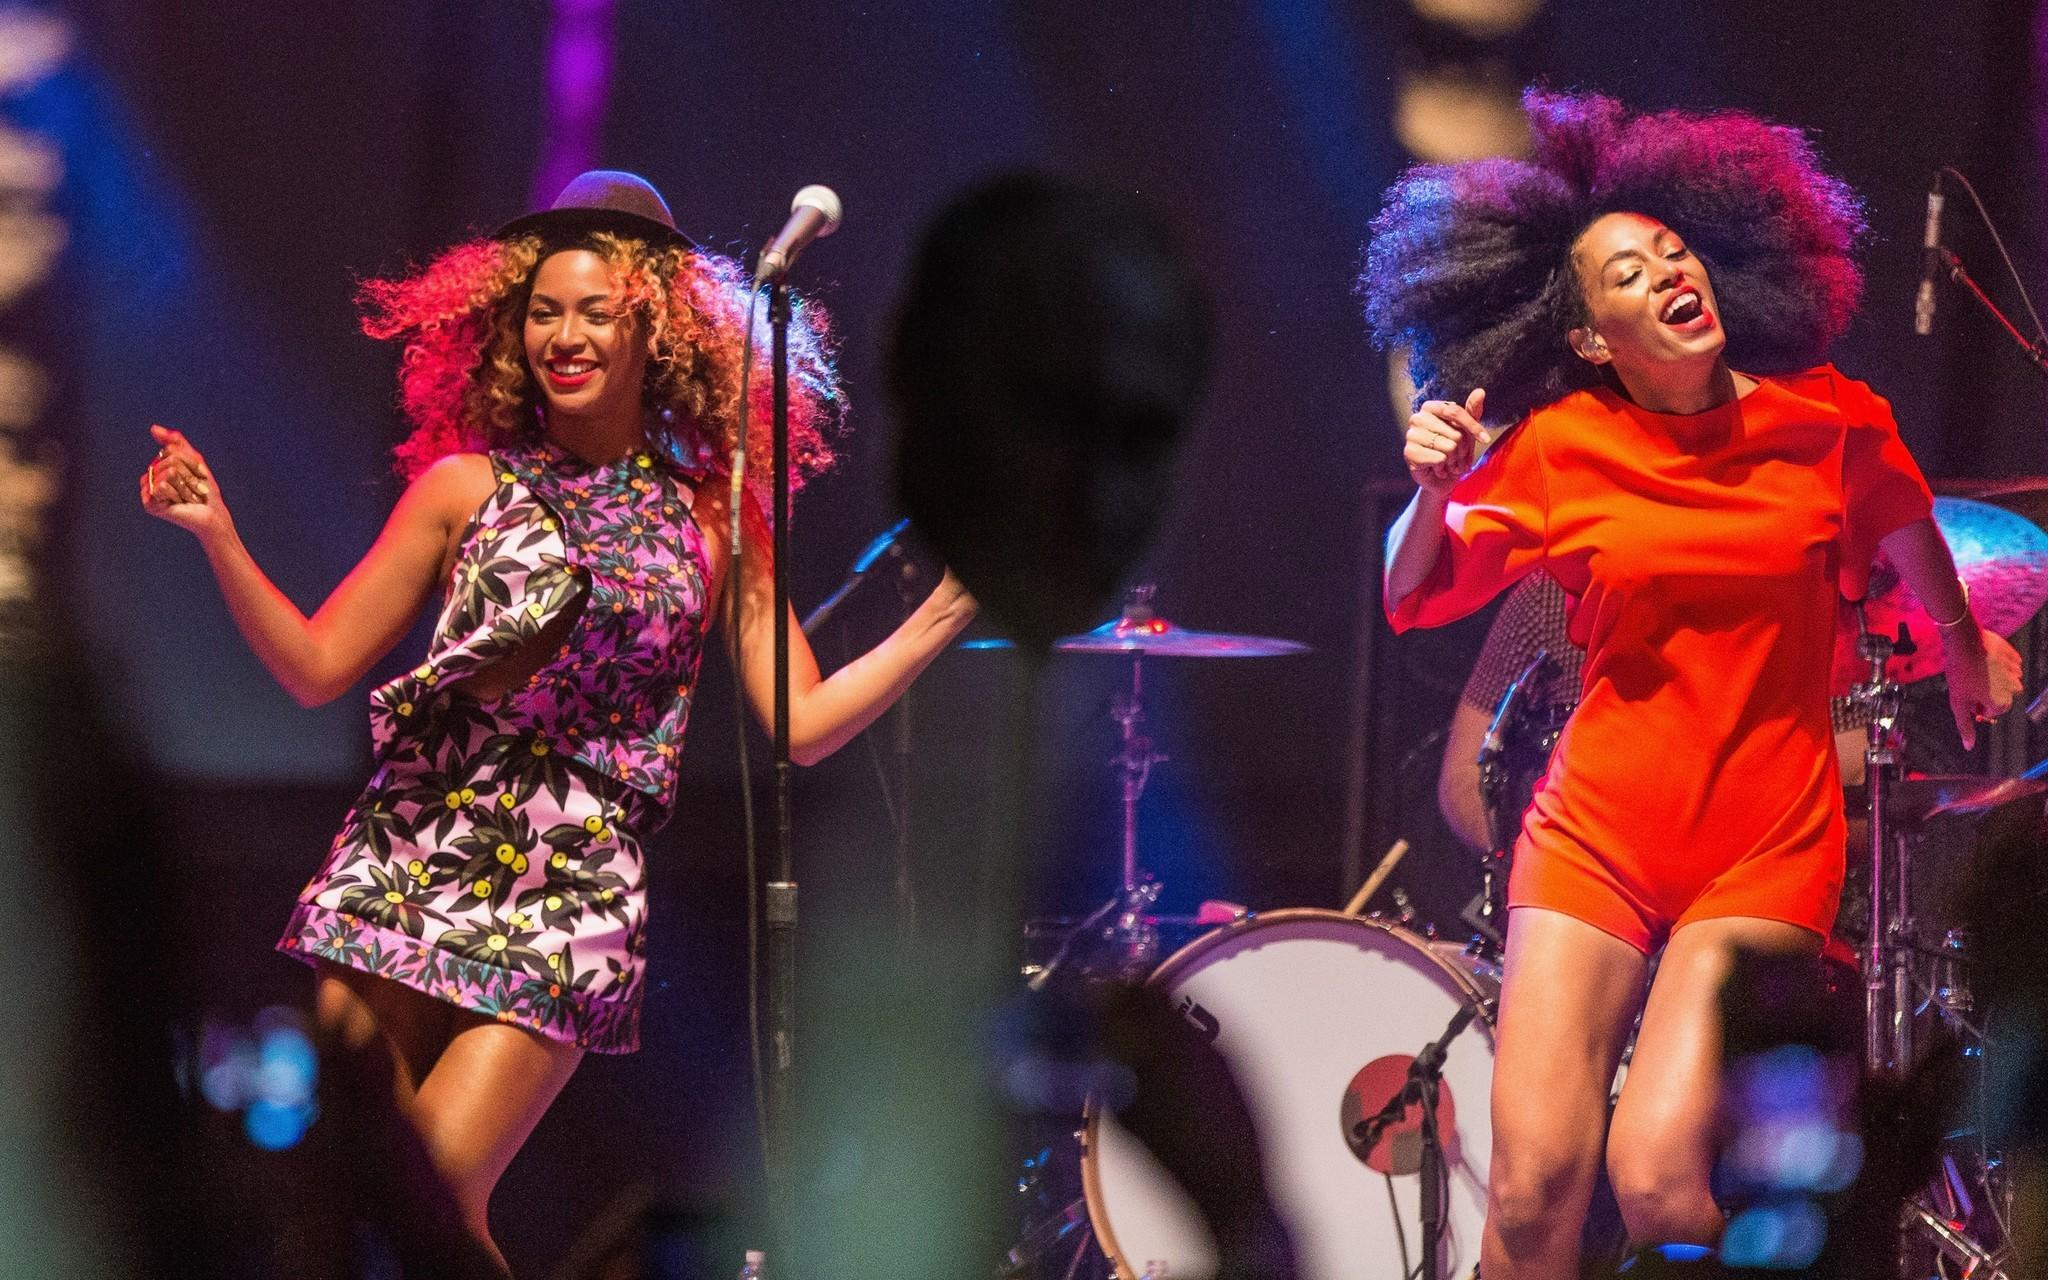 Beyonce, left, performs with her sister Solange Knowles during Day 2 of the 2014 Coachella Valley Music & Arts Festival at the Empire Polo Club in Indio, Calif.